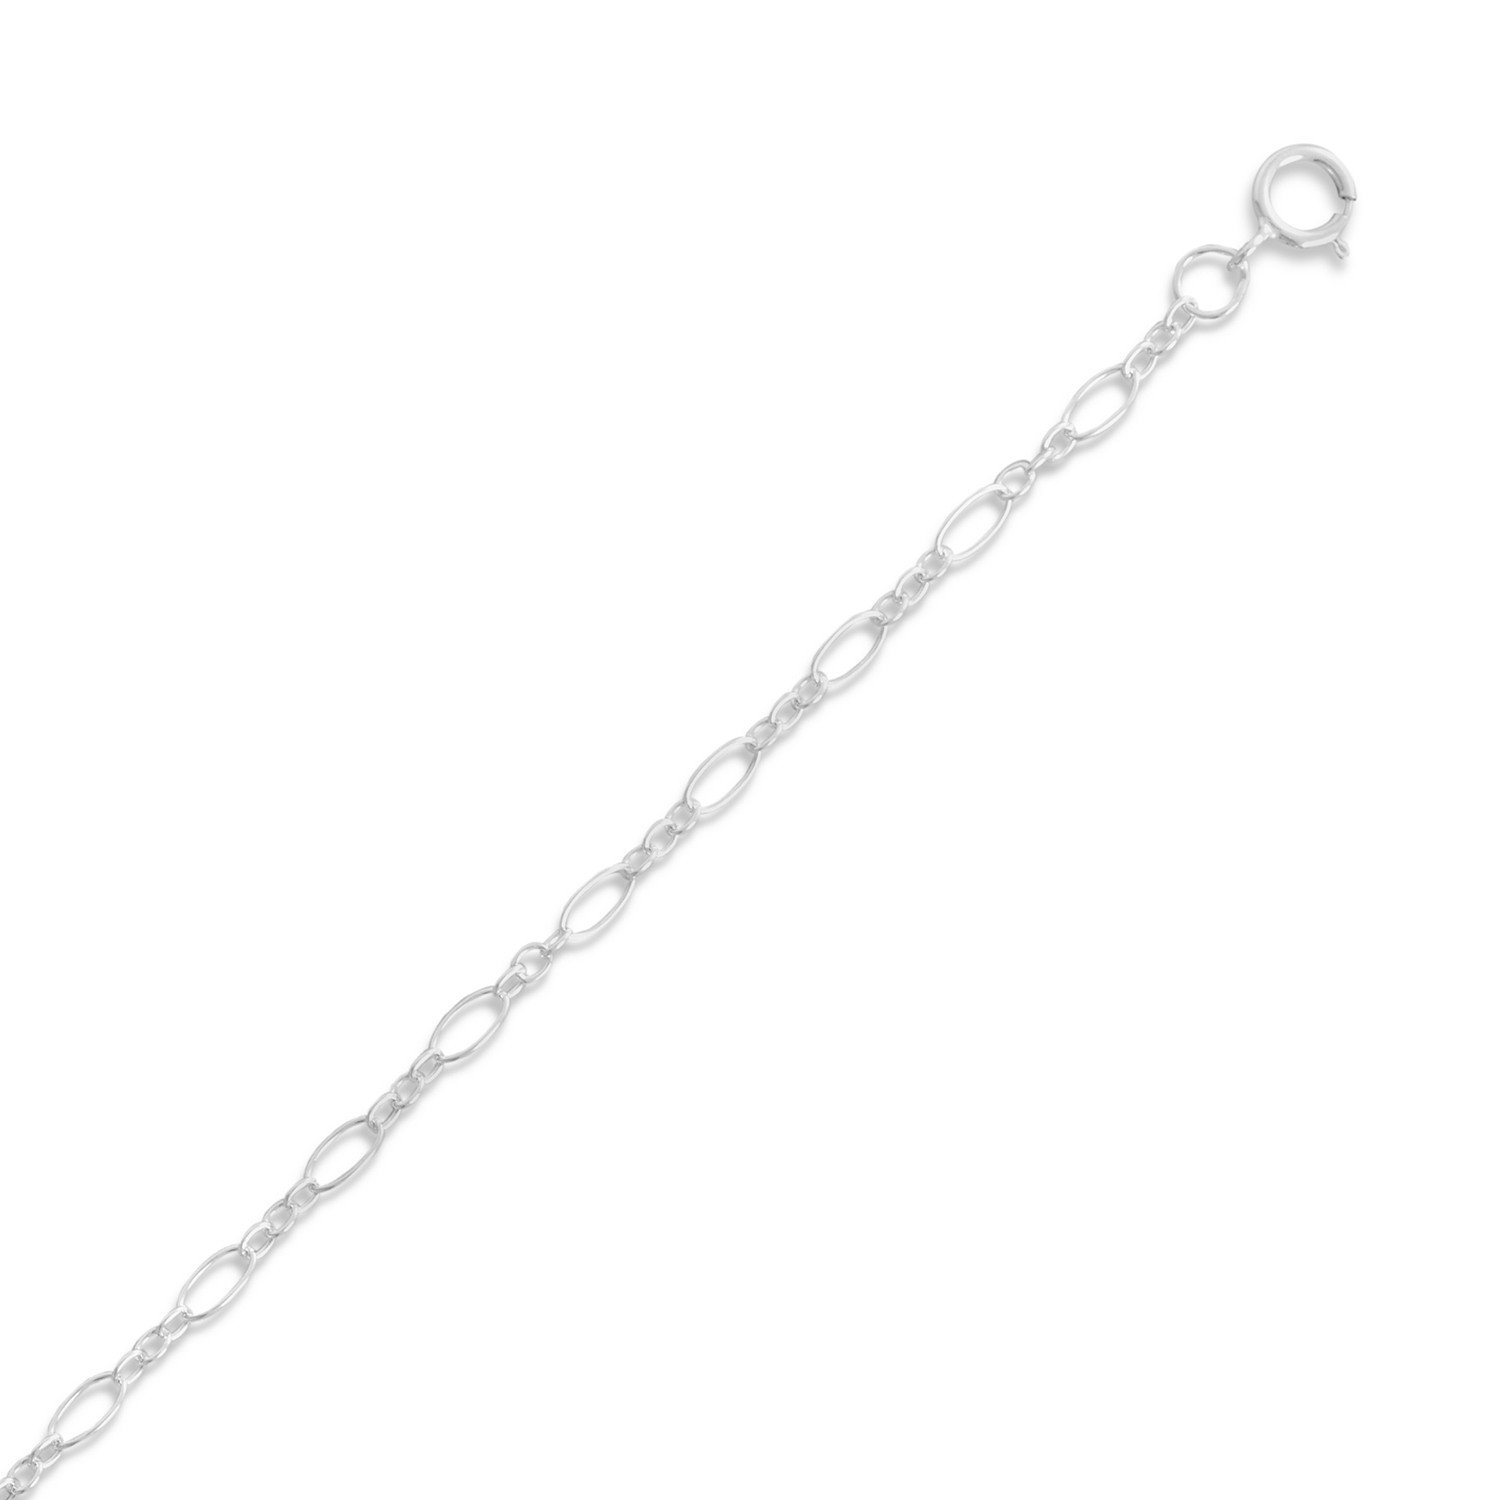 Large and Small Alternating Link Chain